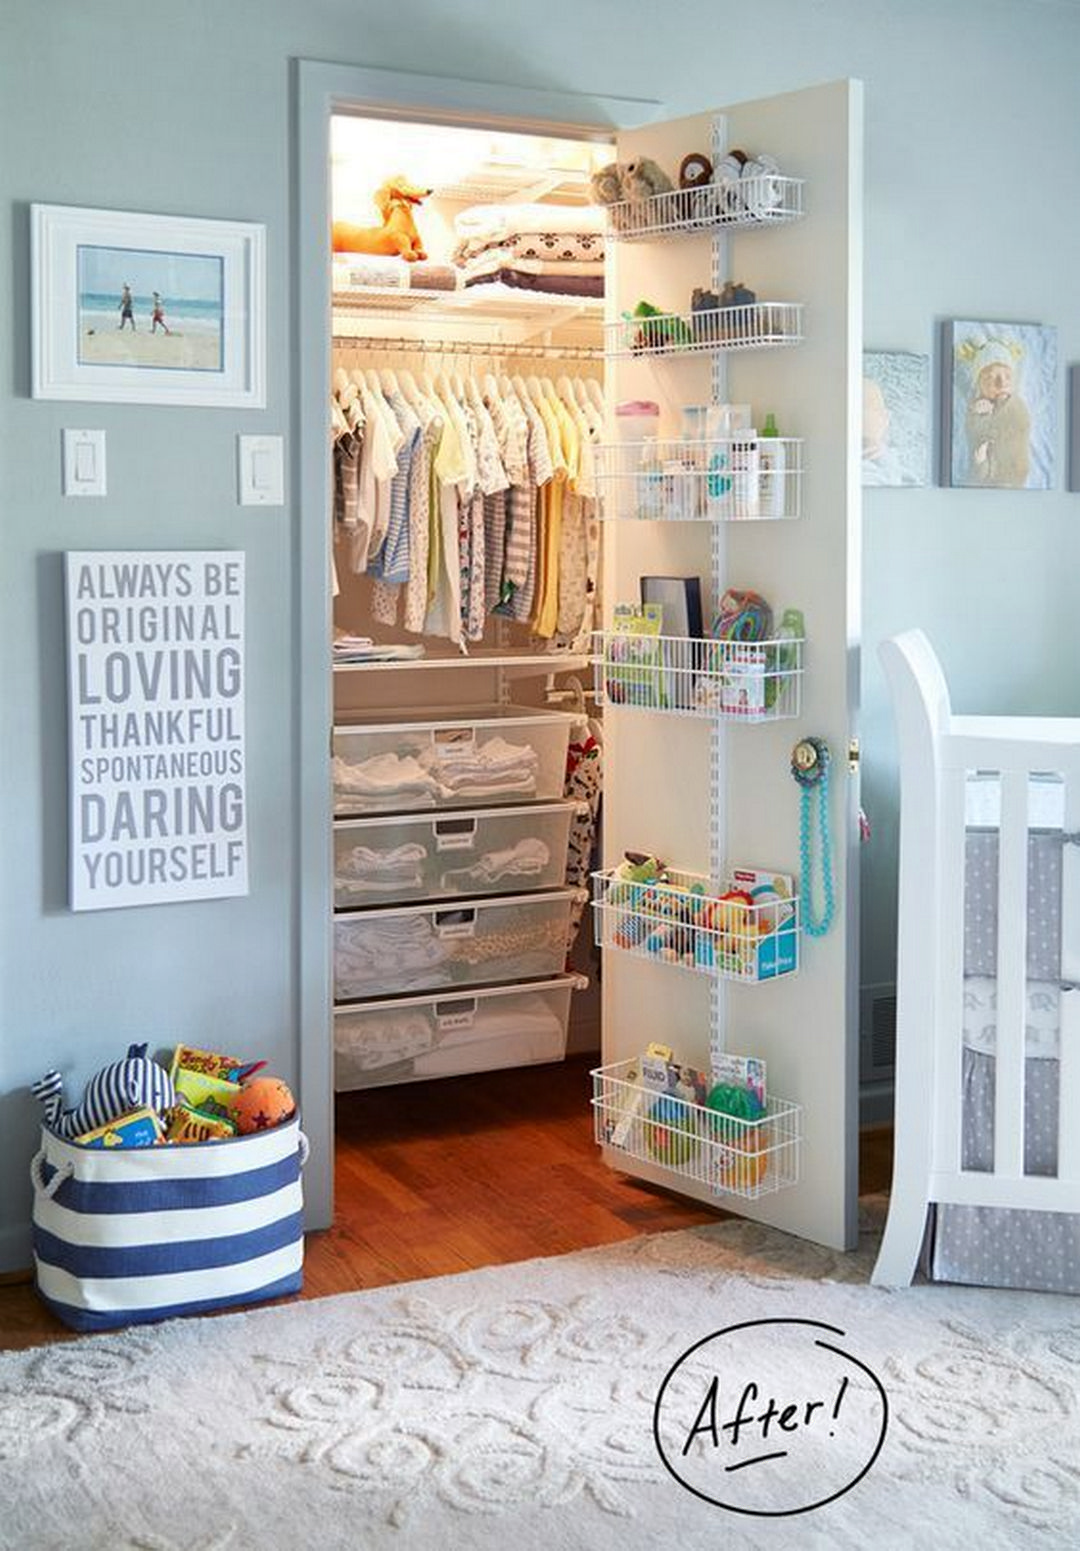 10 Ways You Can Reinvent Nursery Decor Without Looking Like An ... Twin Small Bedroom Decorating Ideas Html on twin teenage bedroom decorating ideas, twin bedroom design ideas, twin size bedroom decorating ideas, twin bedroom decor, twin girls bedroom ideas, twin beds,